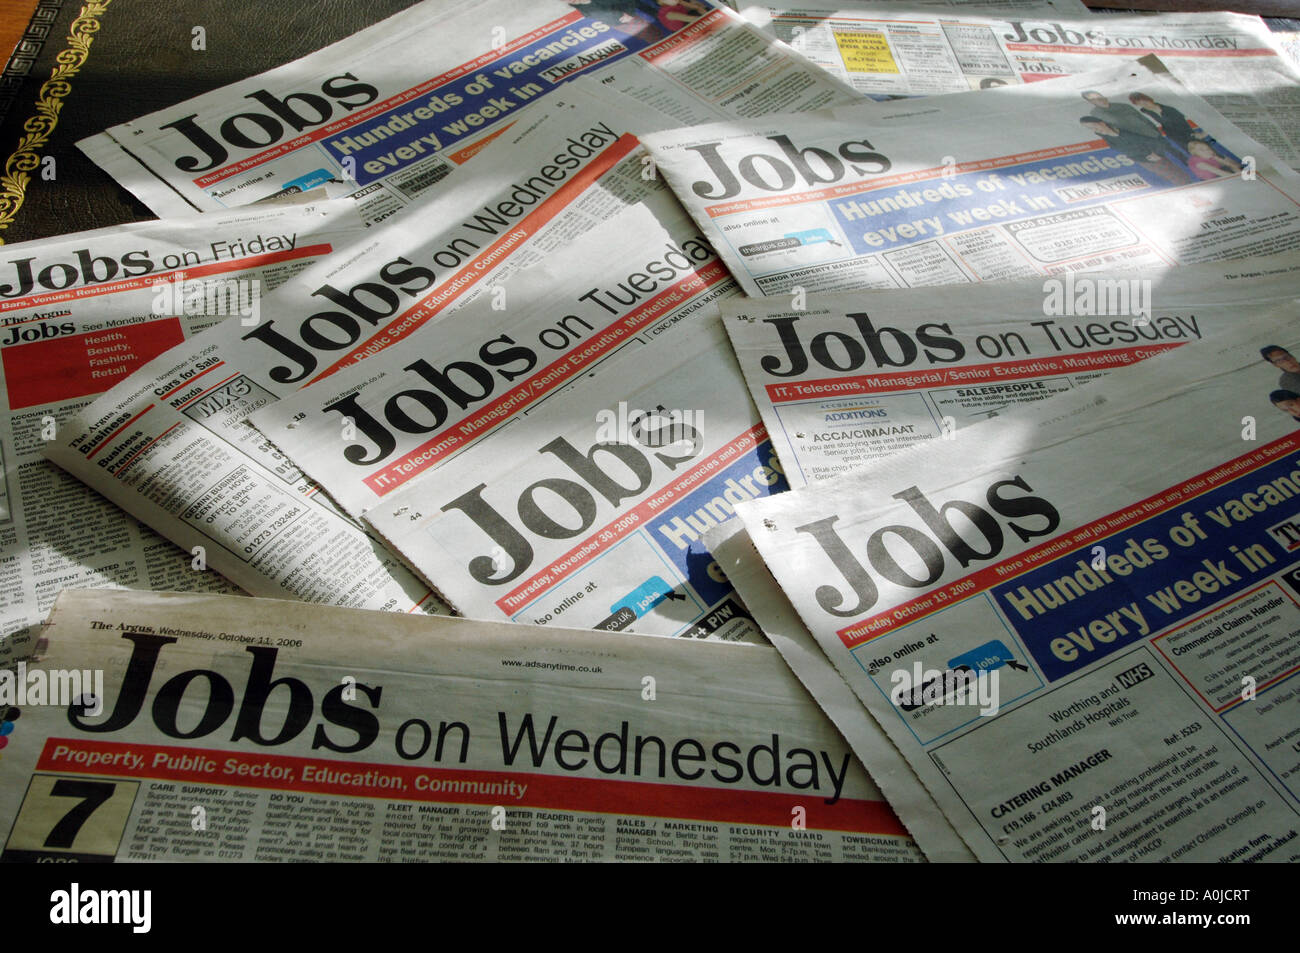 Job ads pages from newspapers - Stock Image